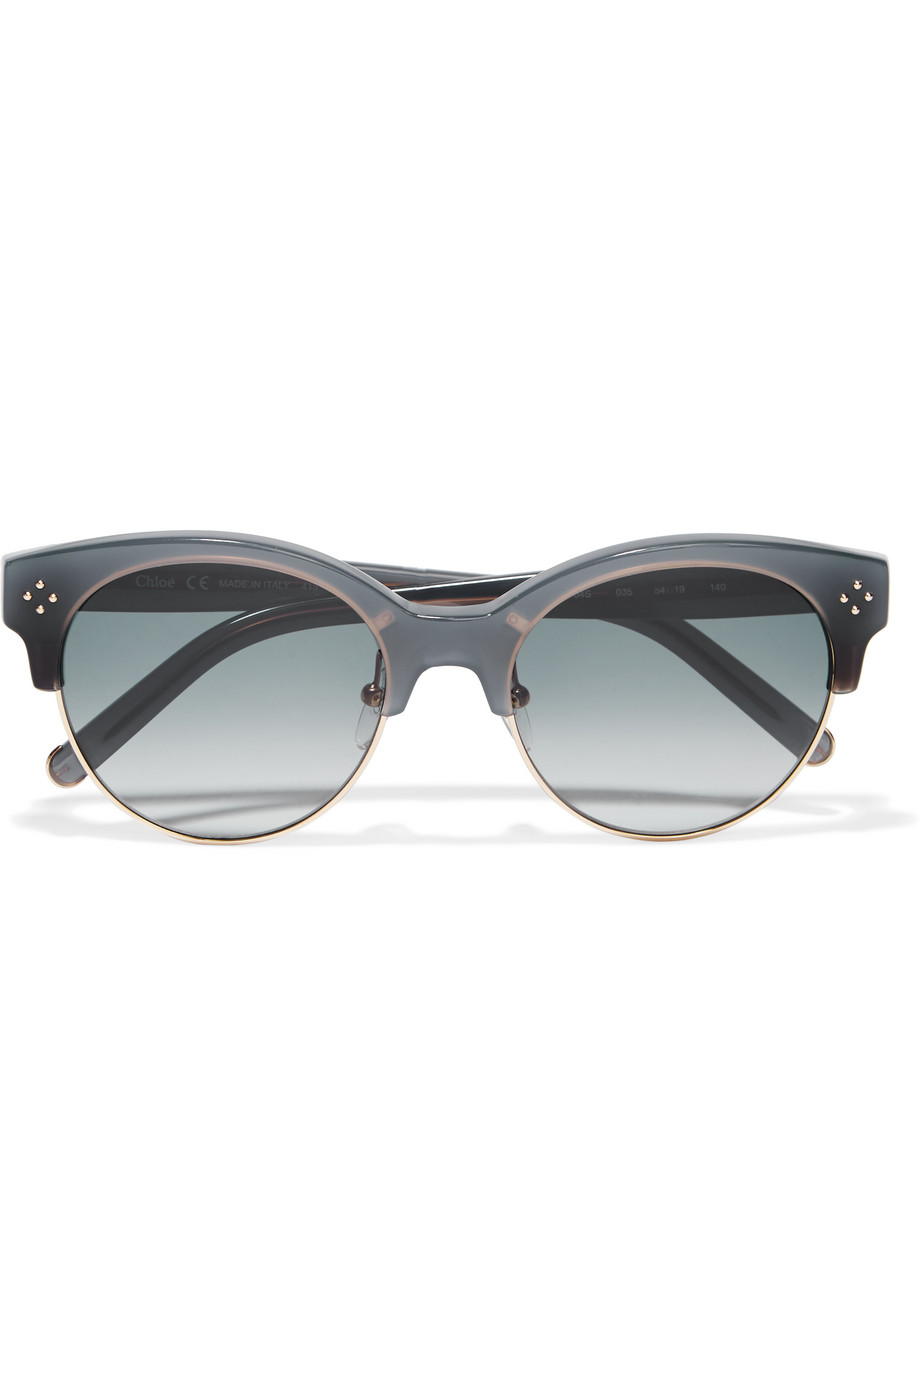 Chloé Boxwood Cat-Eye Acetate and Metal Sunglasses, Gray, Women's